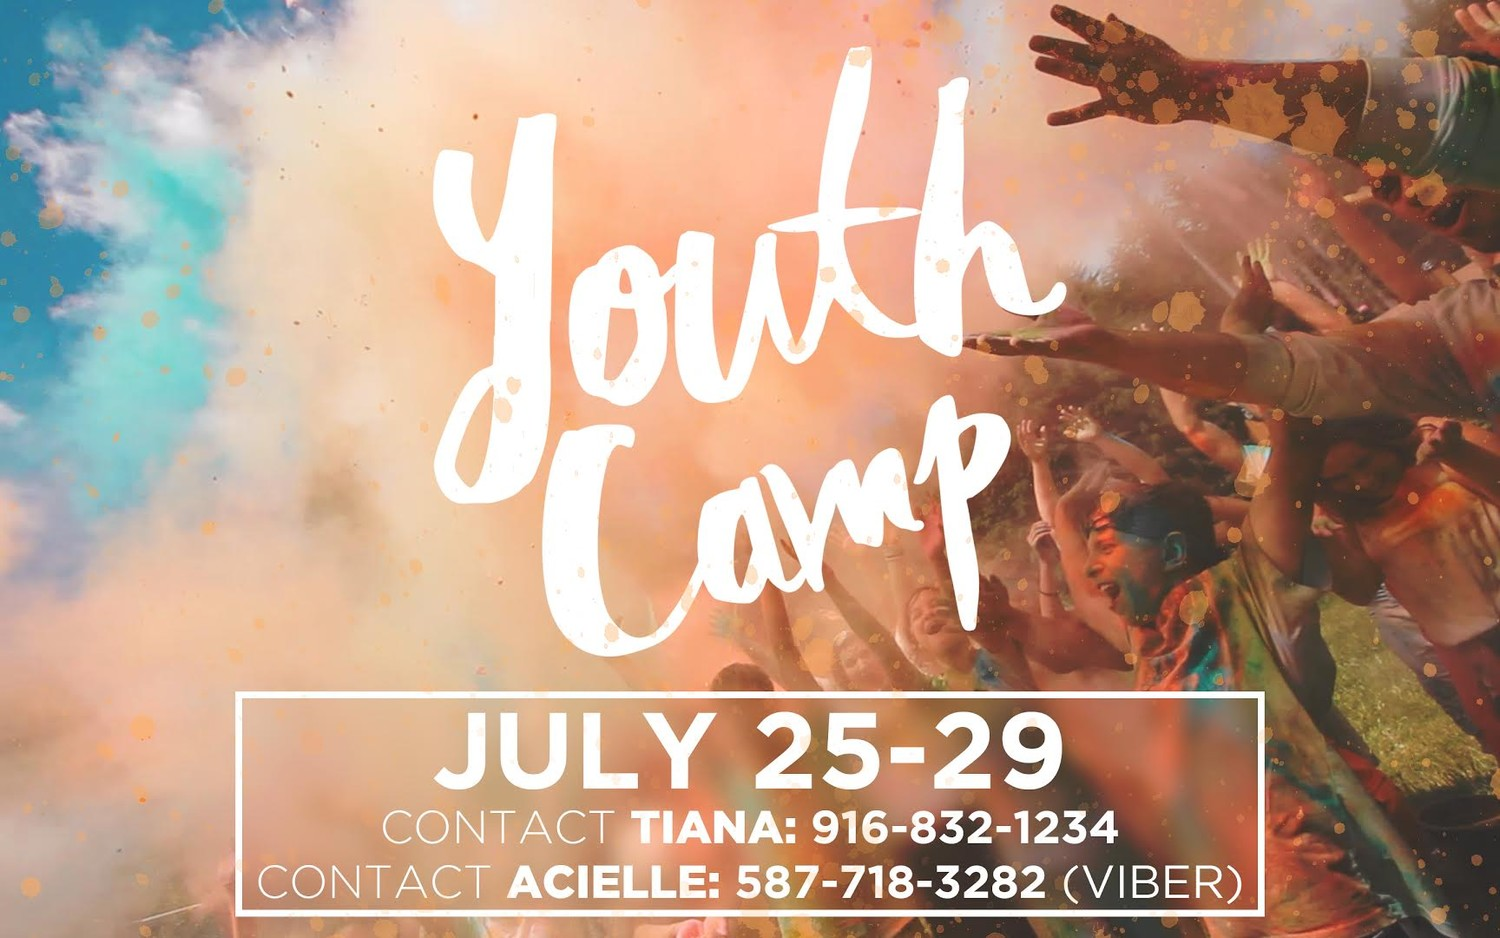 Transformation Center Youth Camp (July 25-29, 2017)